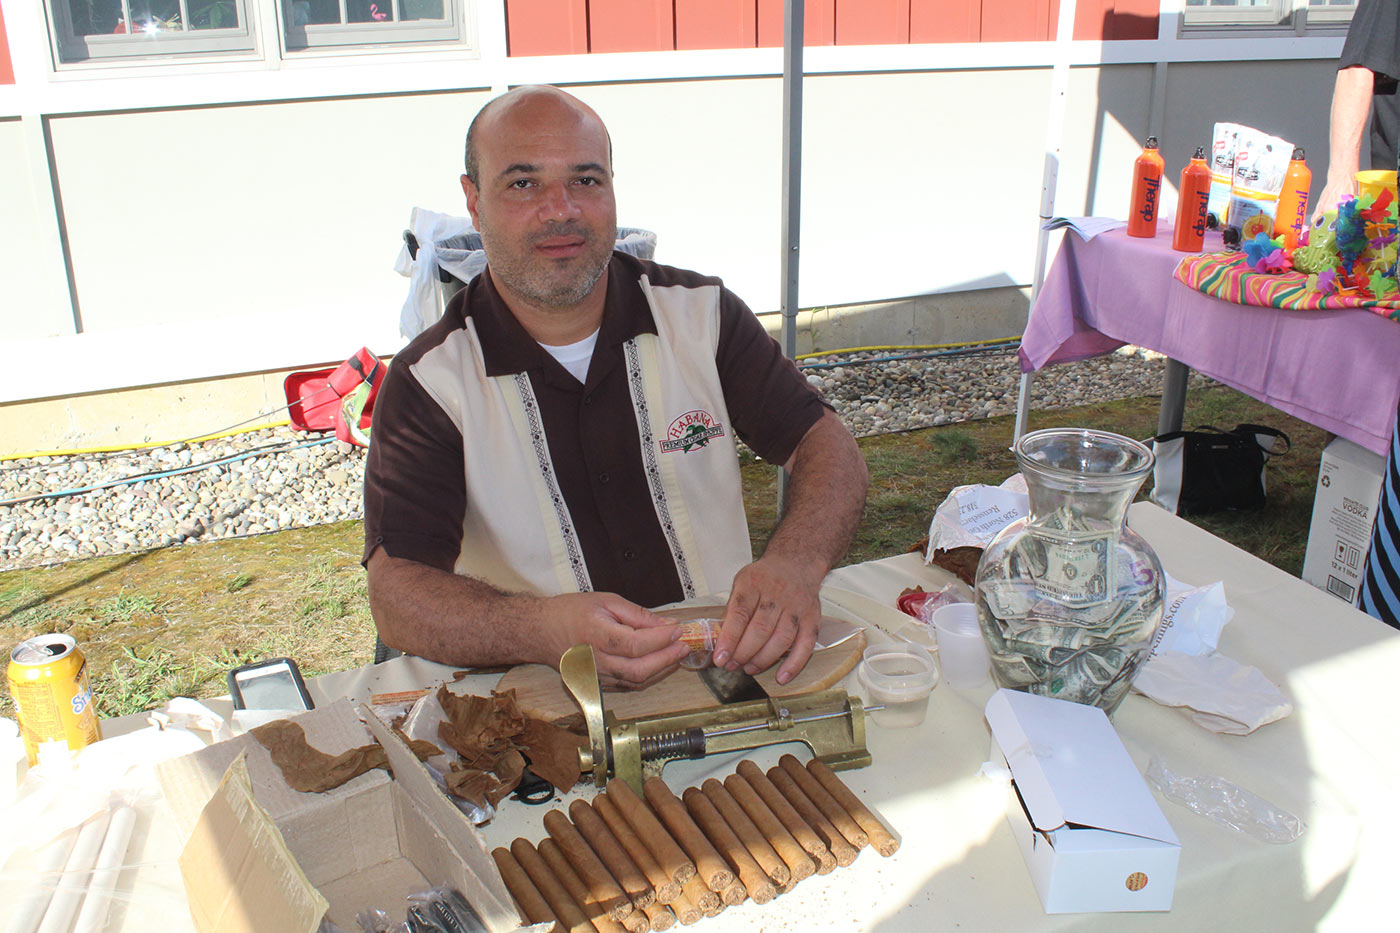 man hand rolling cigars